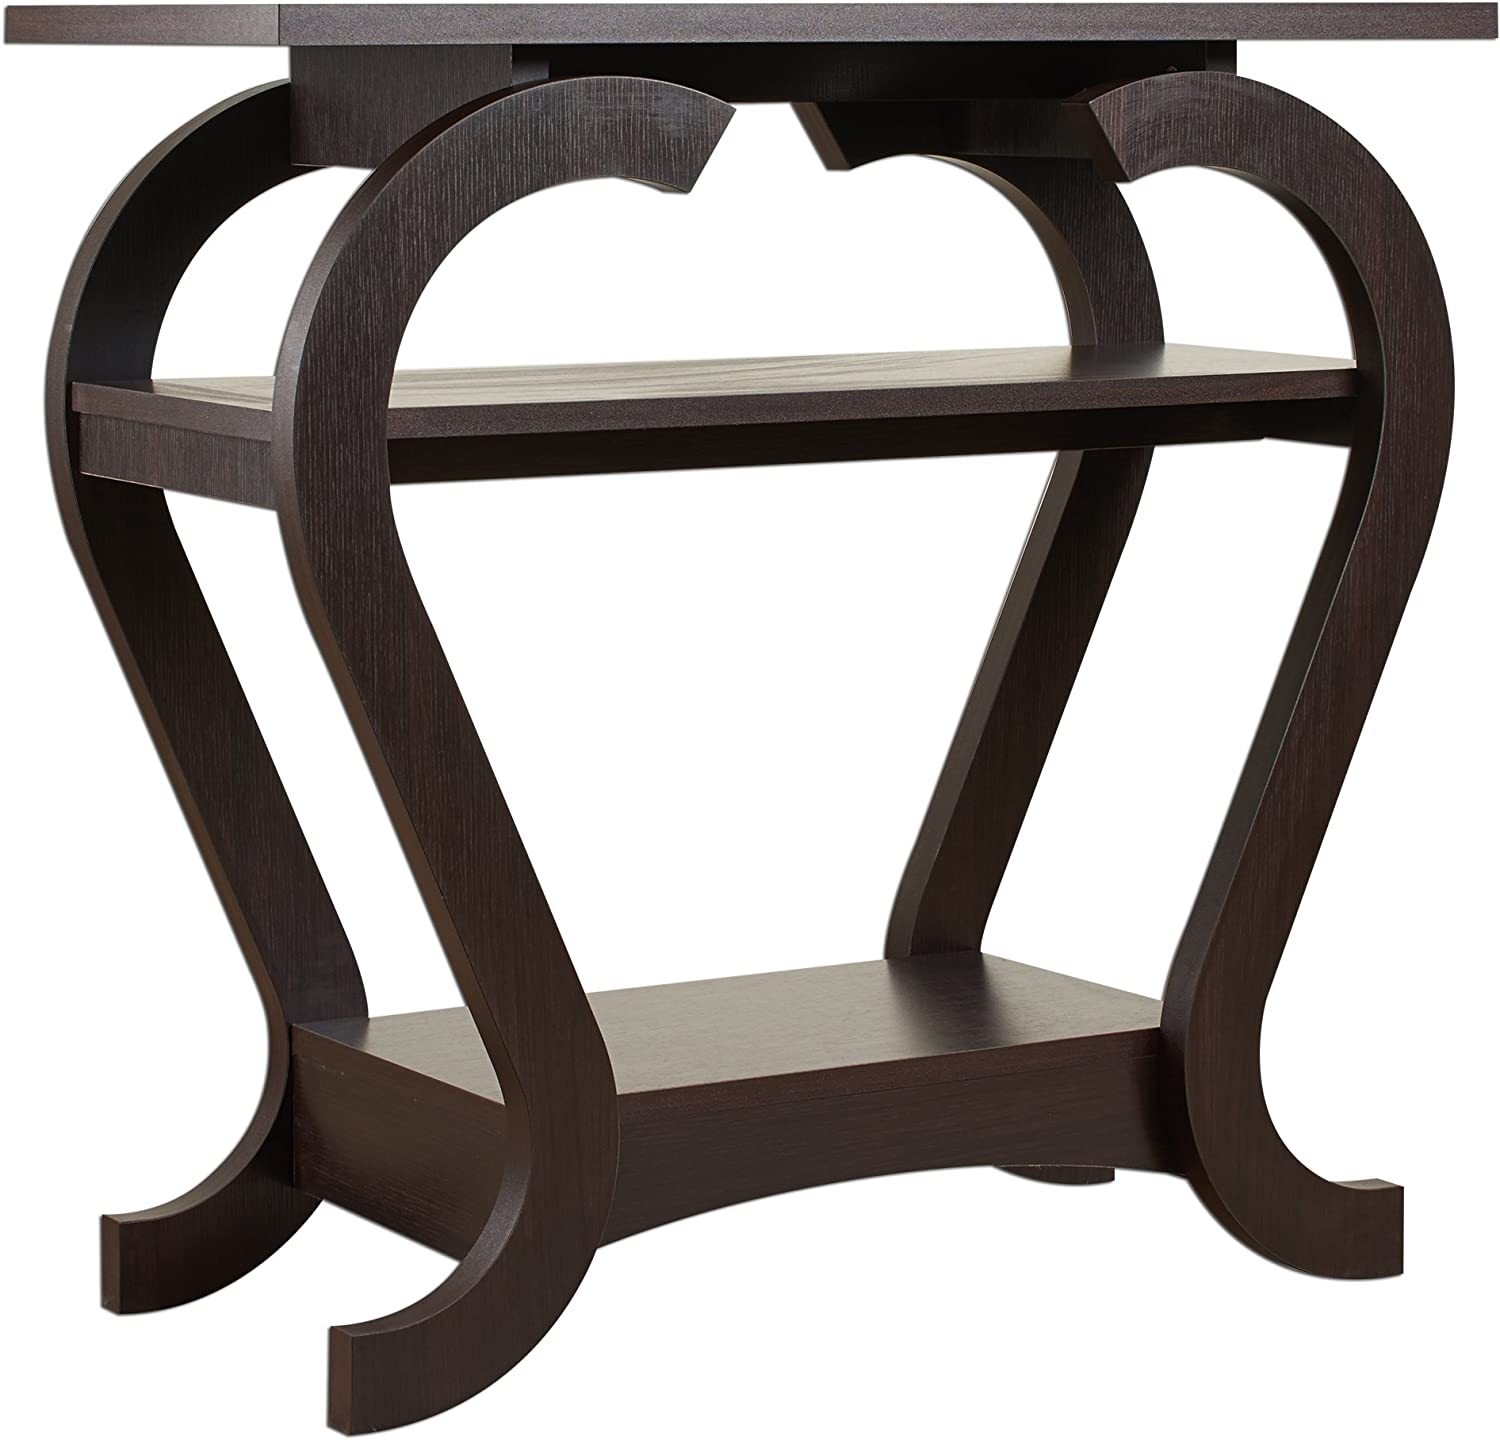 ioHOMES Anya Modern Console Table, Espresso